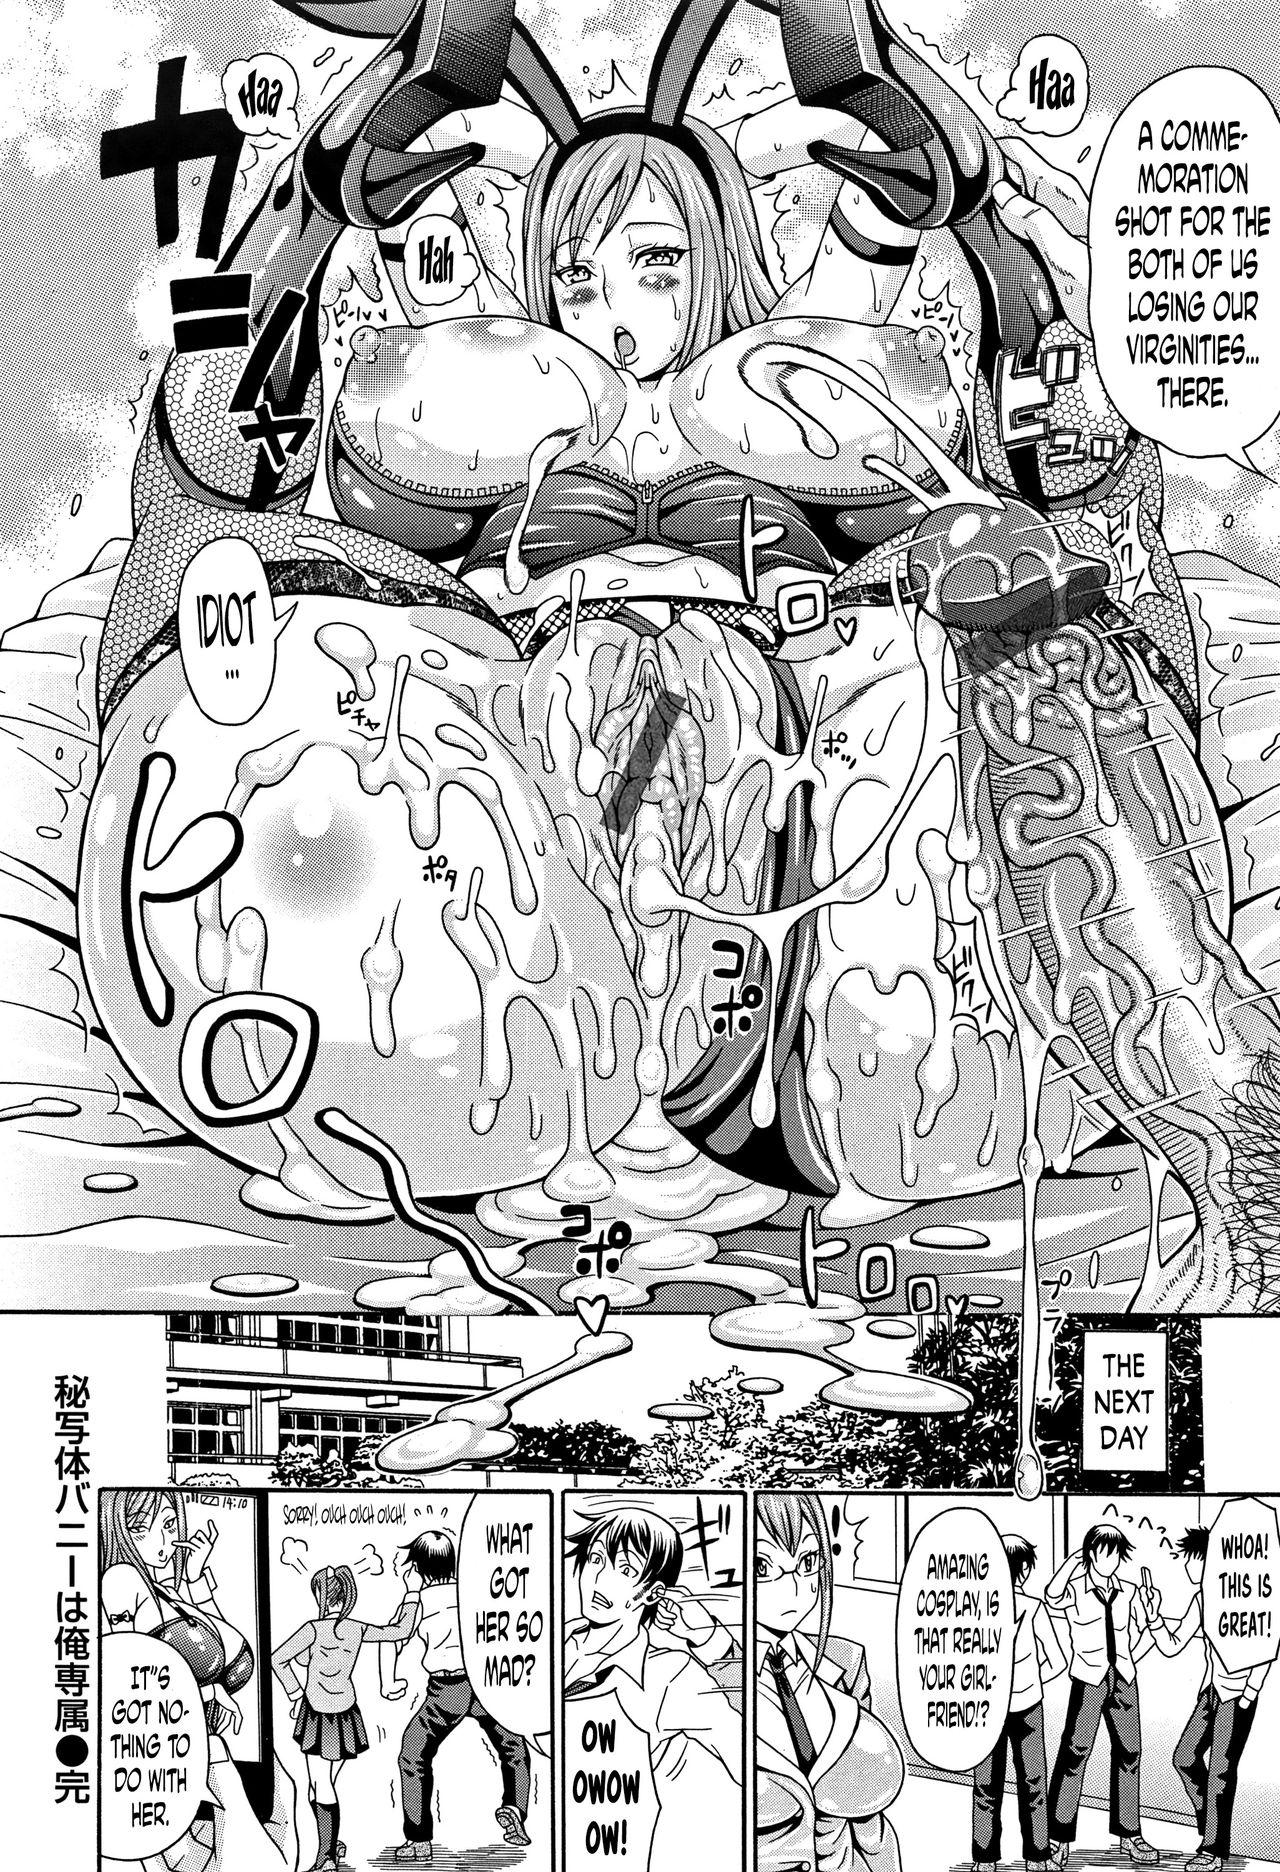 [Andou Hiroyuki] Mamire Chichi - Sticky Tits Feel Hot All Over. Ch.1-7 [English] [doujin-moe.us] 36